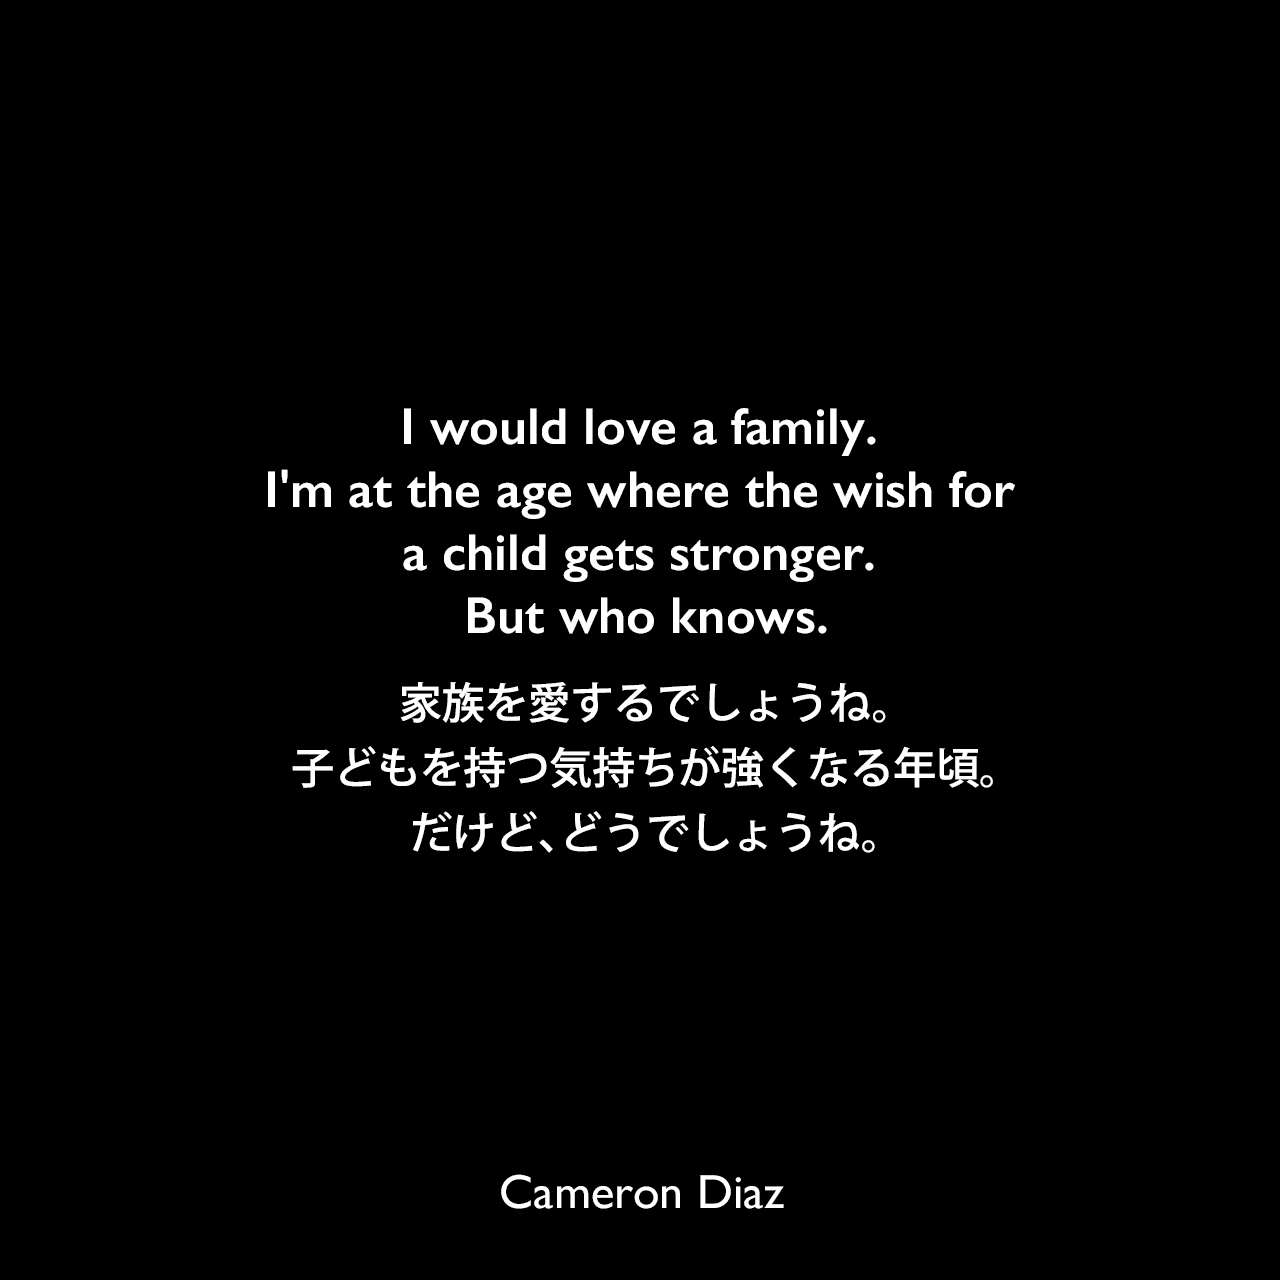 I would love a family. I'm at the age where the wish for a child gets stronger. But who knows.家族を愛するでしょうね。子どもを持つ気持ちが強くなる年頃。だけど、どうでしょうね。Cameron Diaz